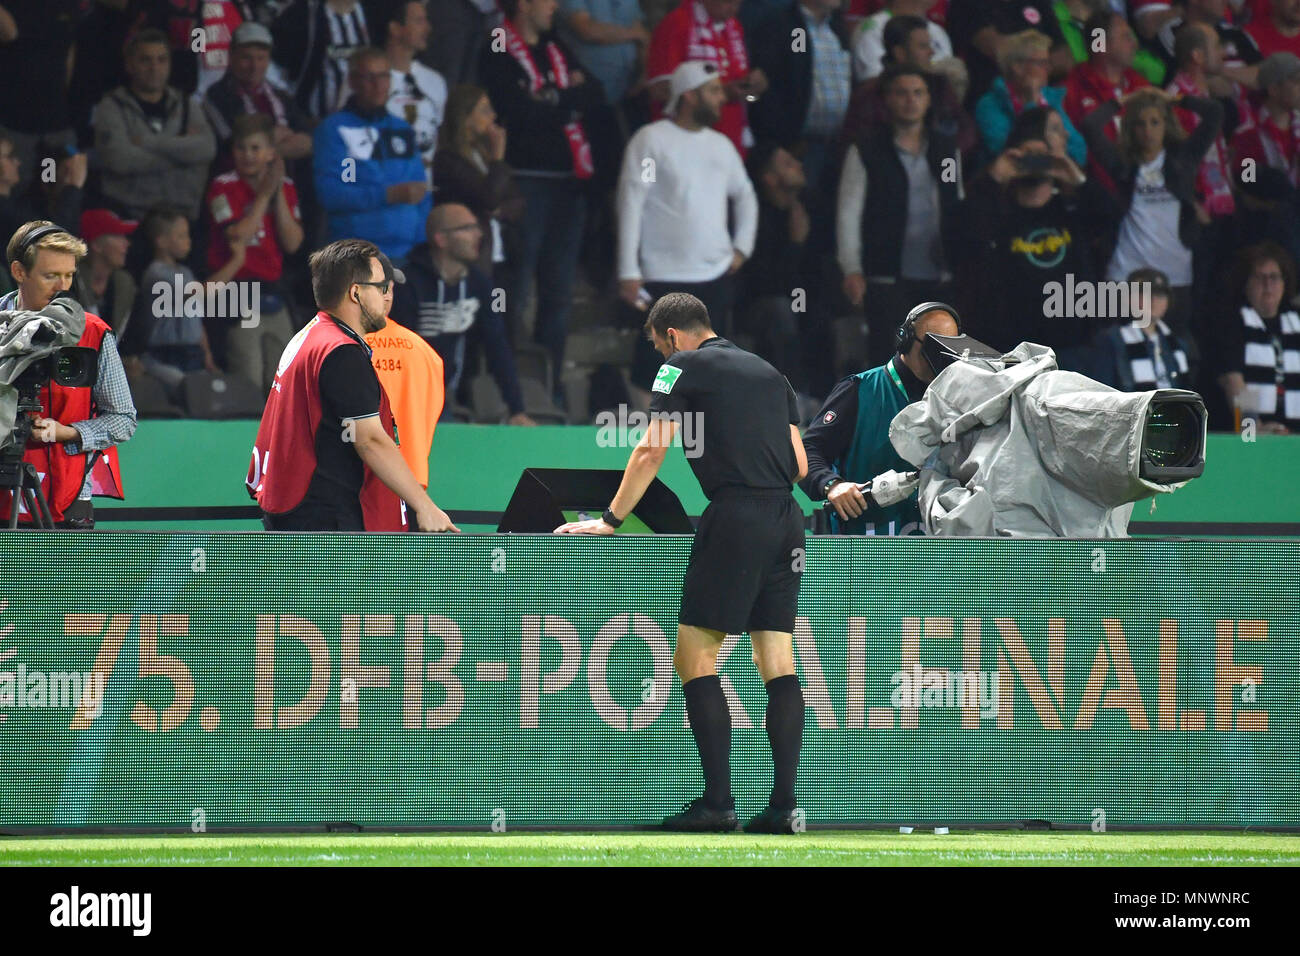 Berlin, Deutschland. 19th May, 2018. referee Felix ZWAYER. looks in the after-game time the controversial scene in the video area, video assist, video evidence and denied a legitimate penalty. DFB Pokal Final, FC Bayern Munich (M) - Eintracht Frankfurt (F) 1-3, at the Olympic Stadium in Berlin on 19.05.2018 | usage worldwide Credit: dpa/Alamy Live News - Stock Image